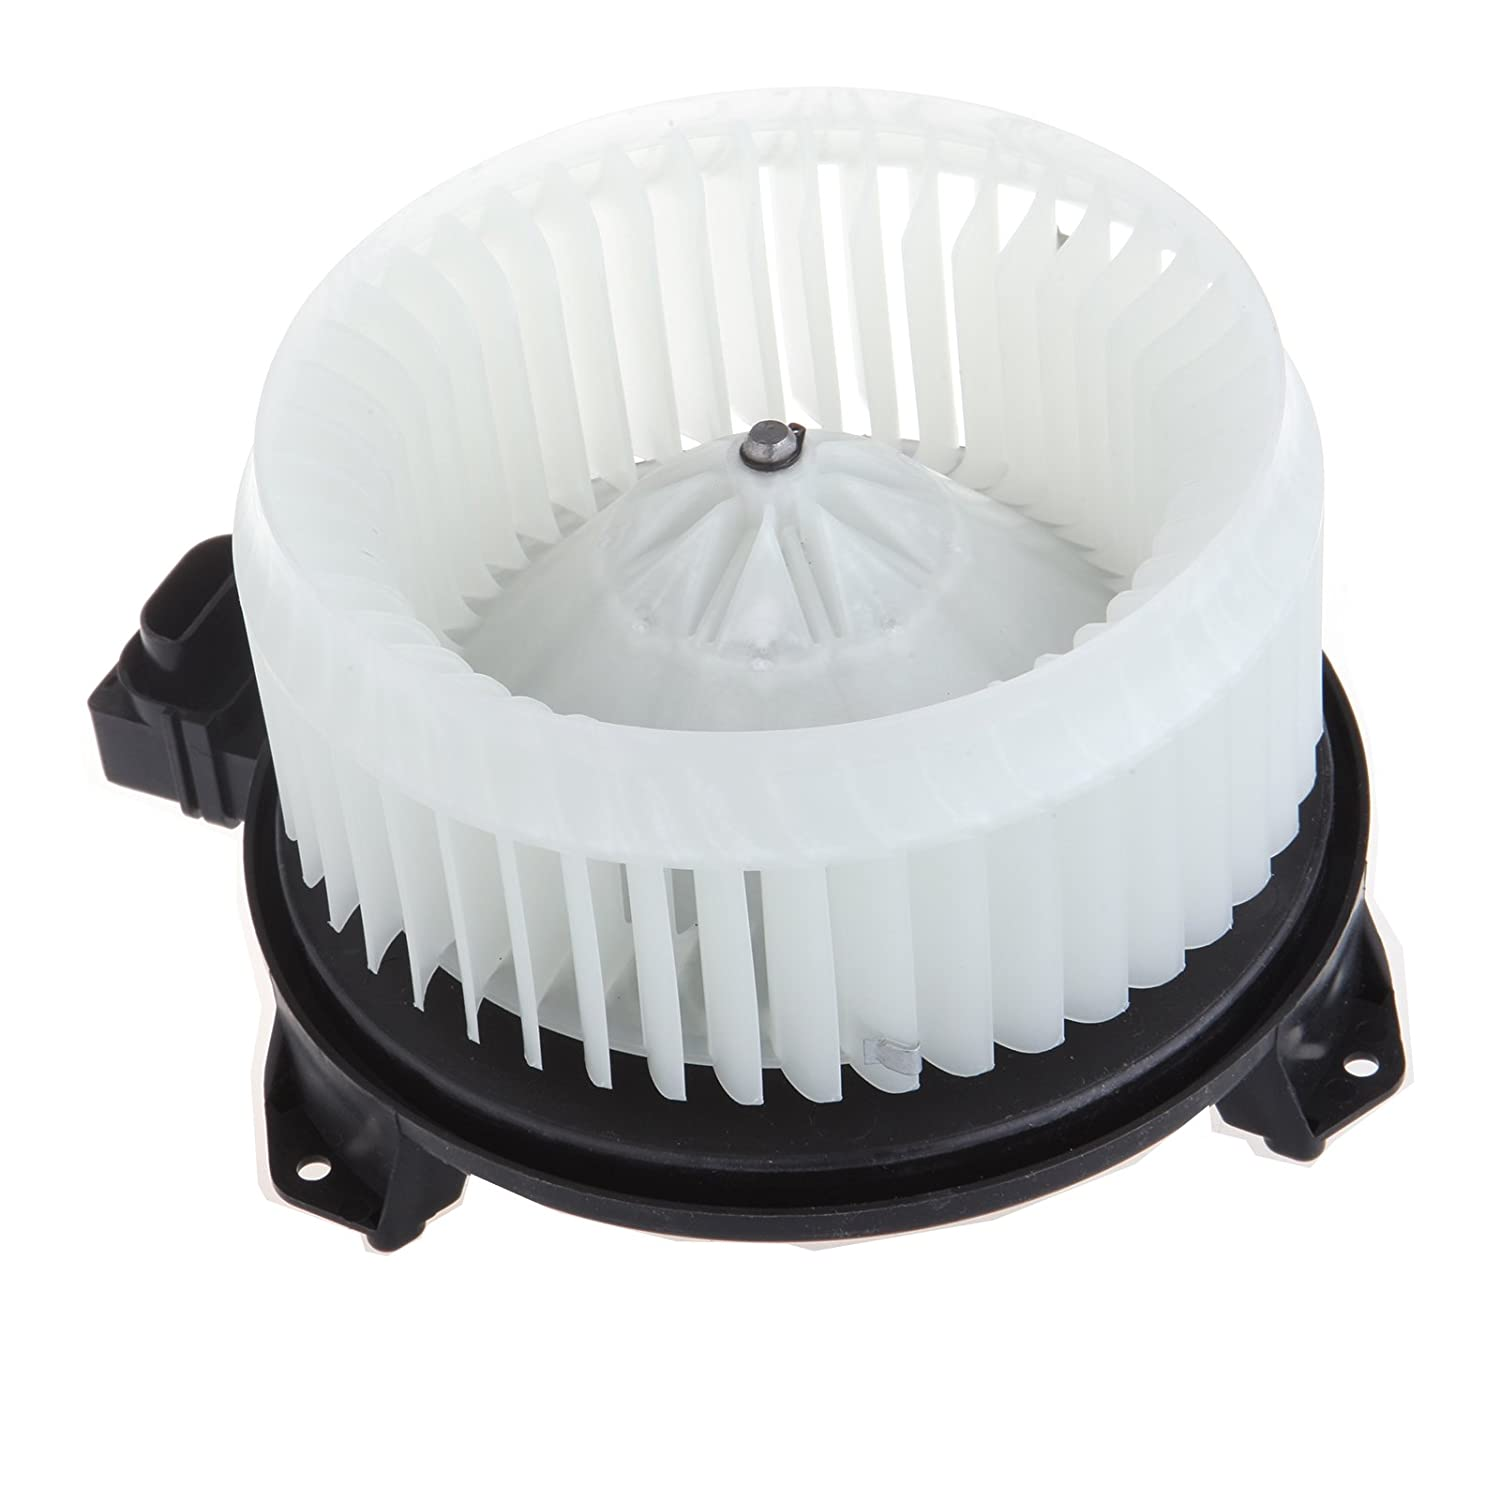 HVAC plastic Heater Blower Motor ABS w/Fan Cage ECCPP Replacement fit for 2007-2013 Acura MDX /2007-2012 Acura RDX /2009-2014 Acura TL/TSX /2006-2011 Buick Lucerne 058386-5211-1641379163